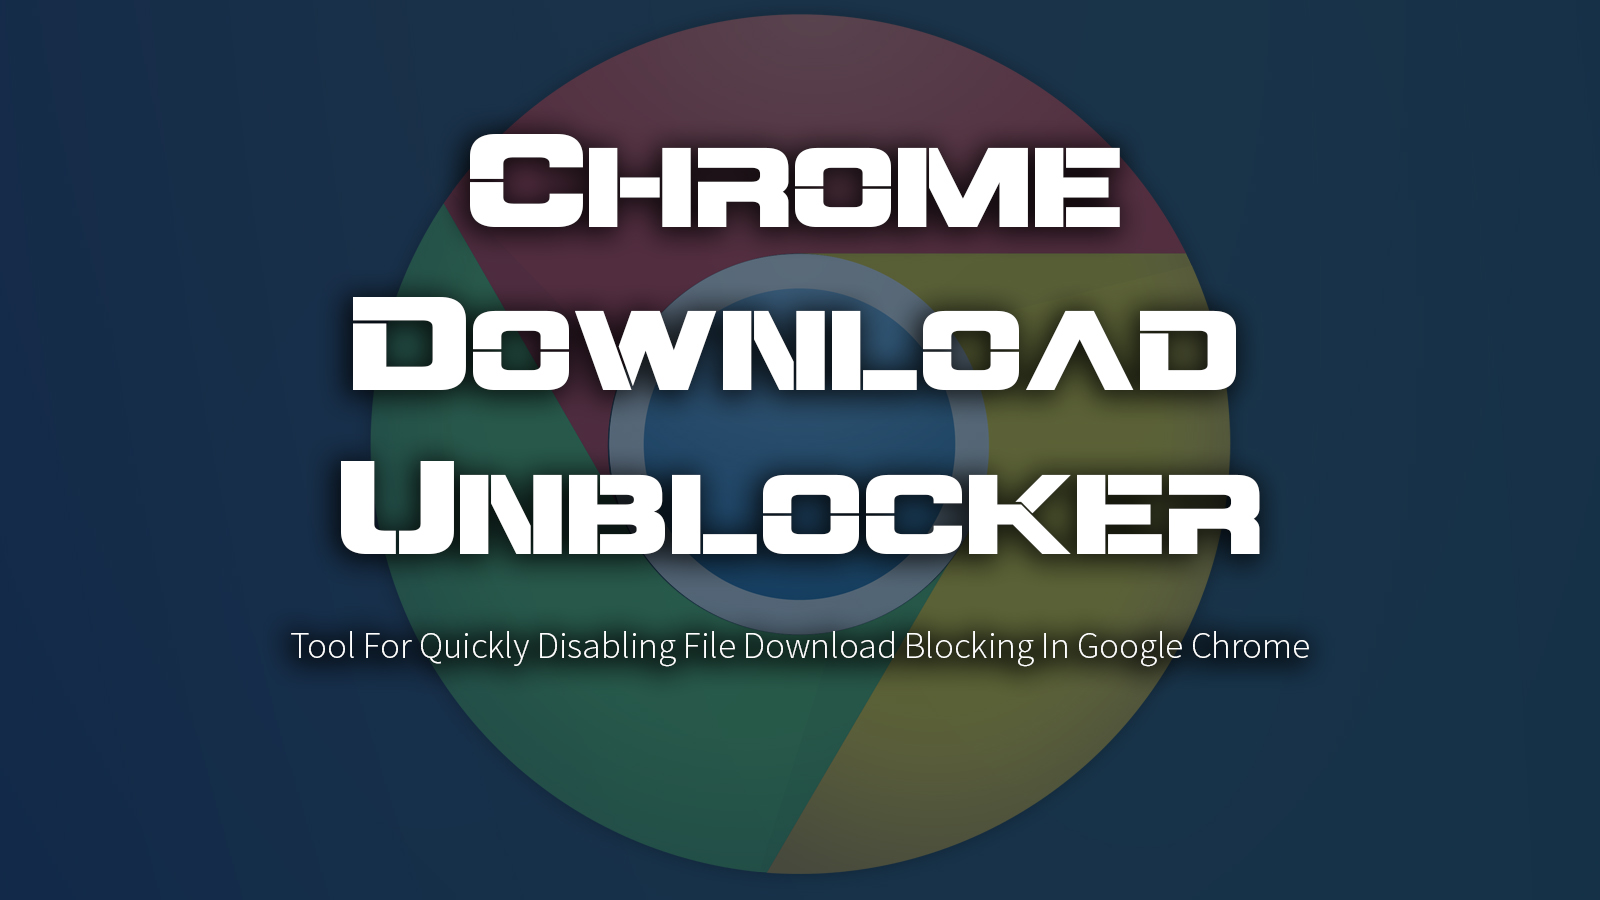 Chrome Download Unblocker - Tool For Quickly Disabling File Download Blocking In Google Chrome